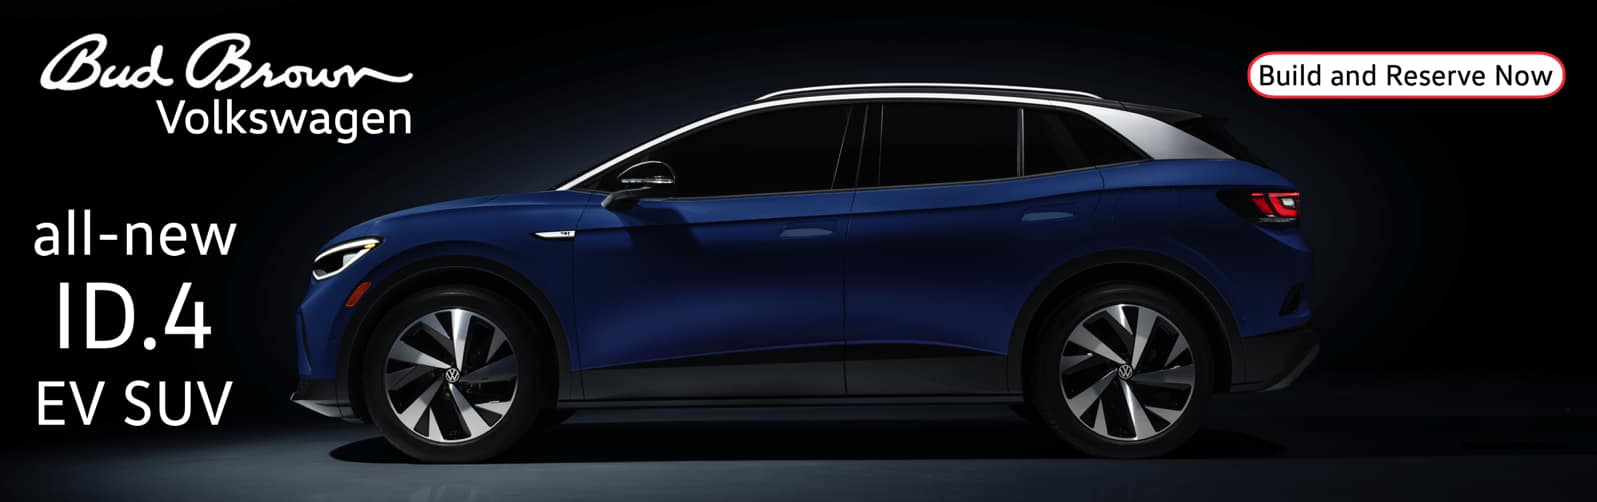 Reserve the ID.4 all-electric SUV at Bud Brown.